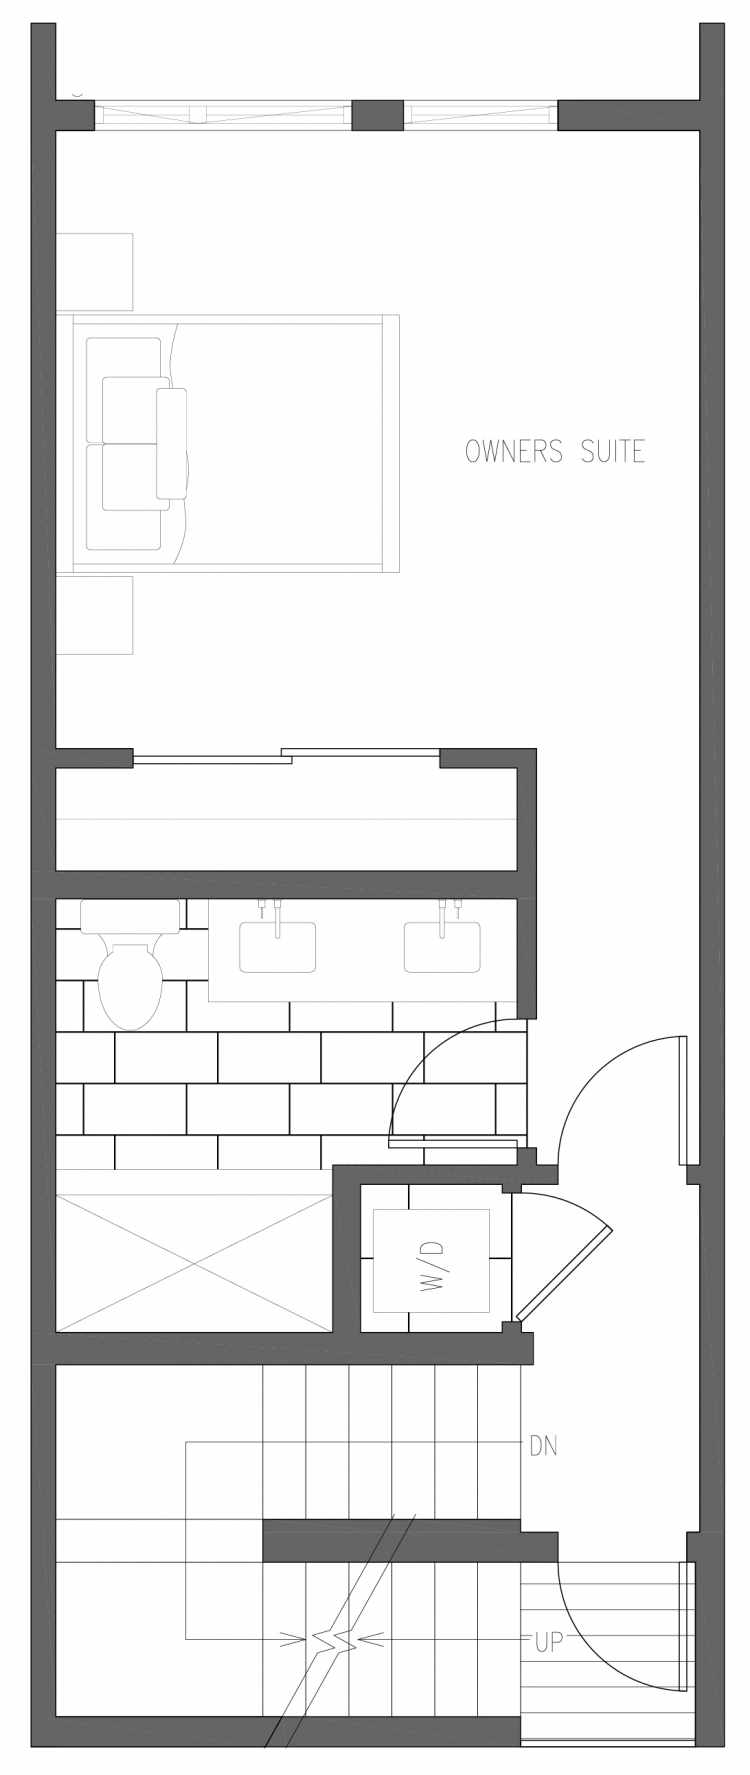 Third Floor Plan of 6413 14th Ave NW, One of the Oleana Townhomes in Ballard by Isola Homes